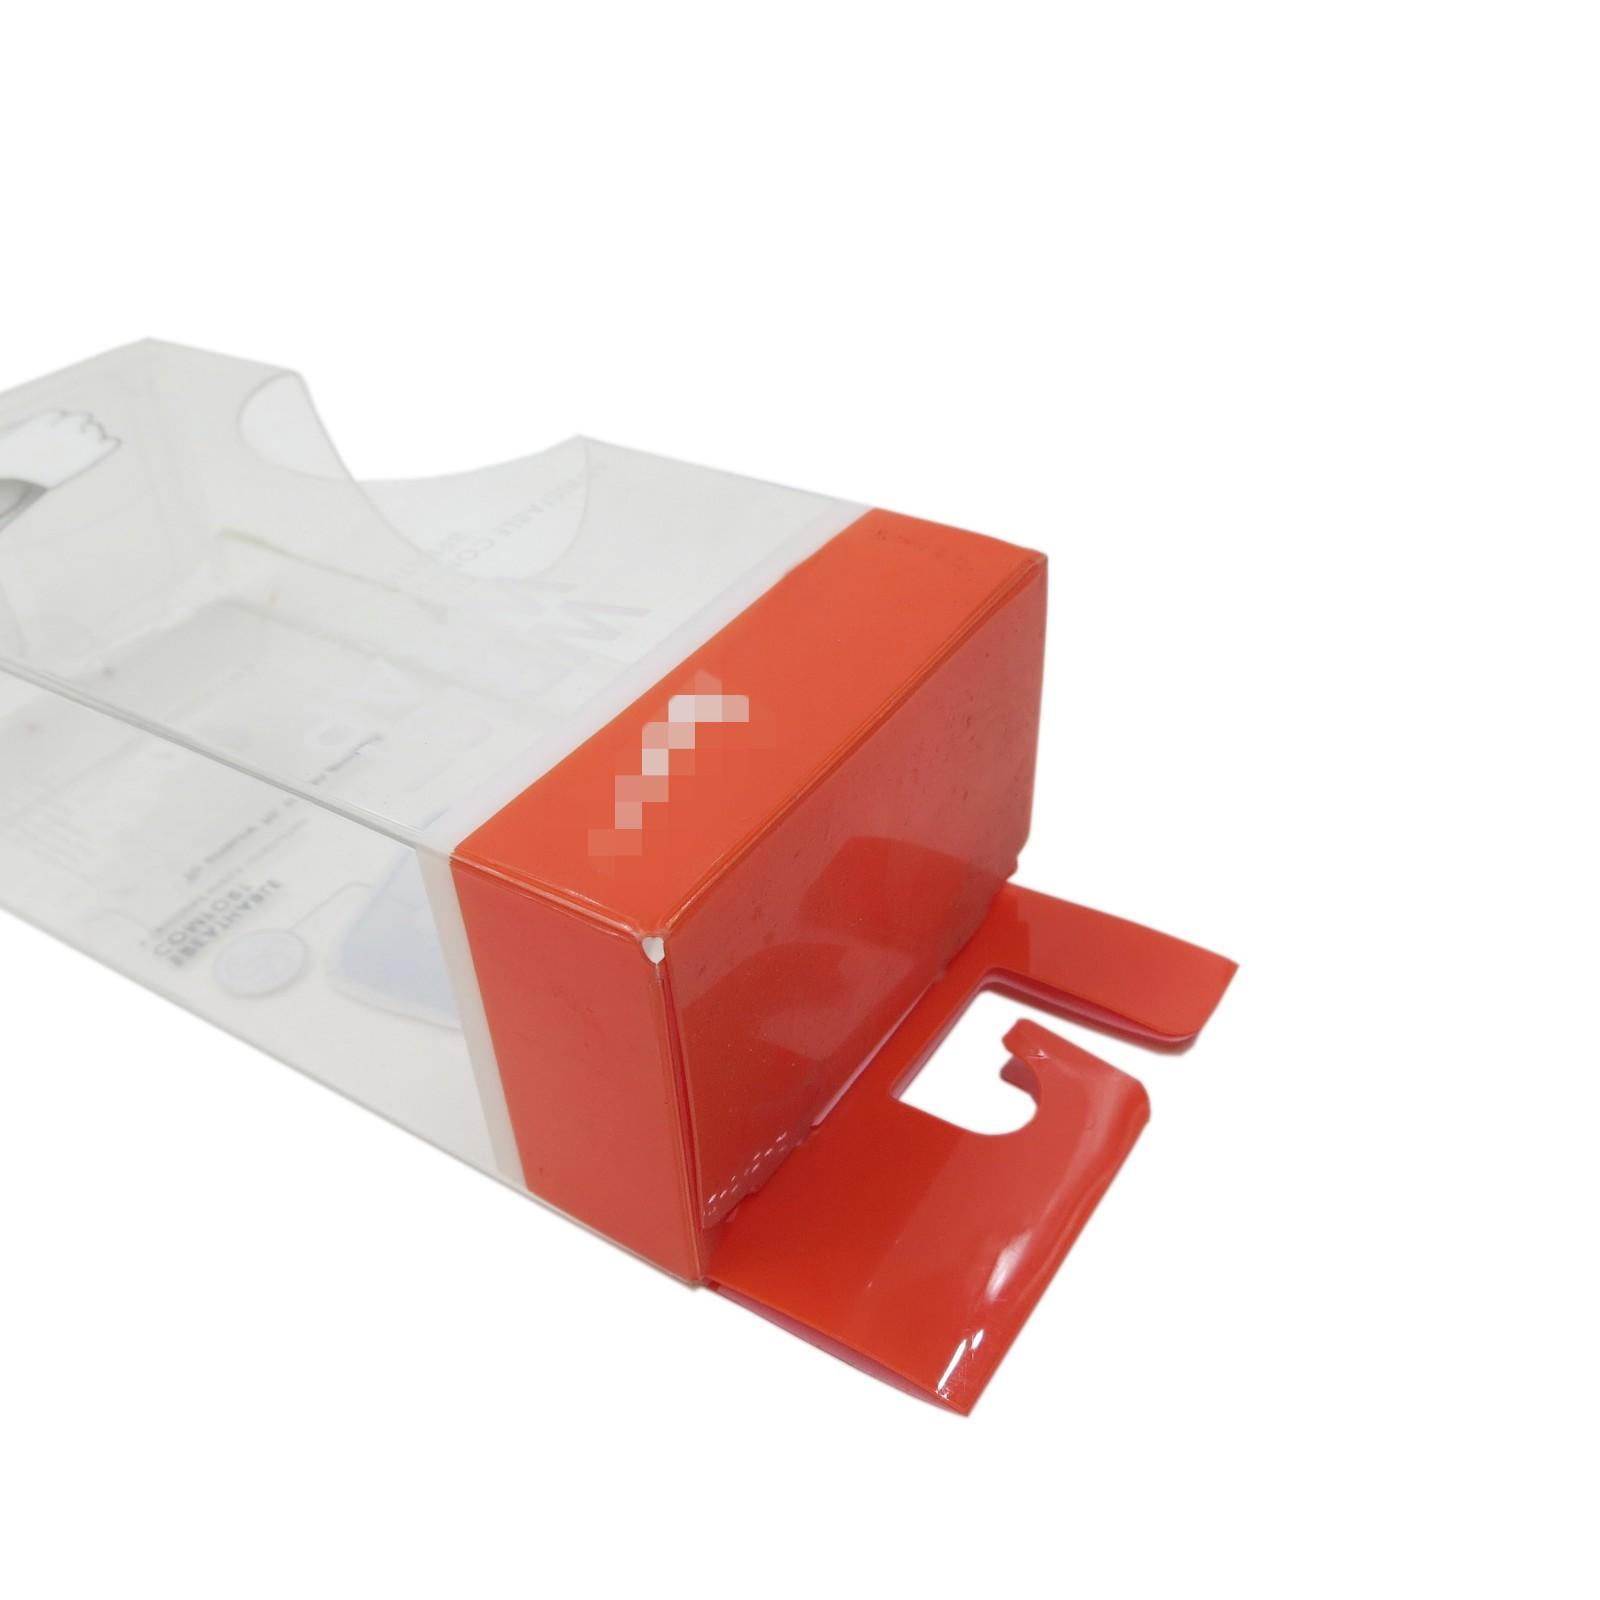 Yijianxing Plastic Products good-package plastic box packaging order now for packing-3